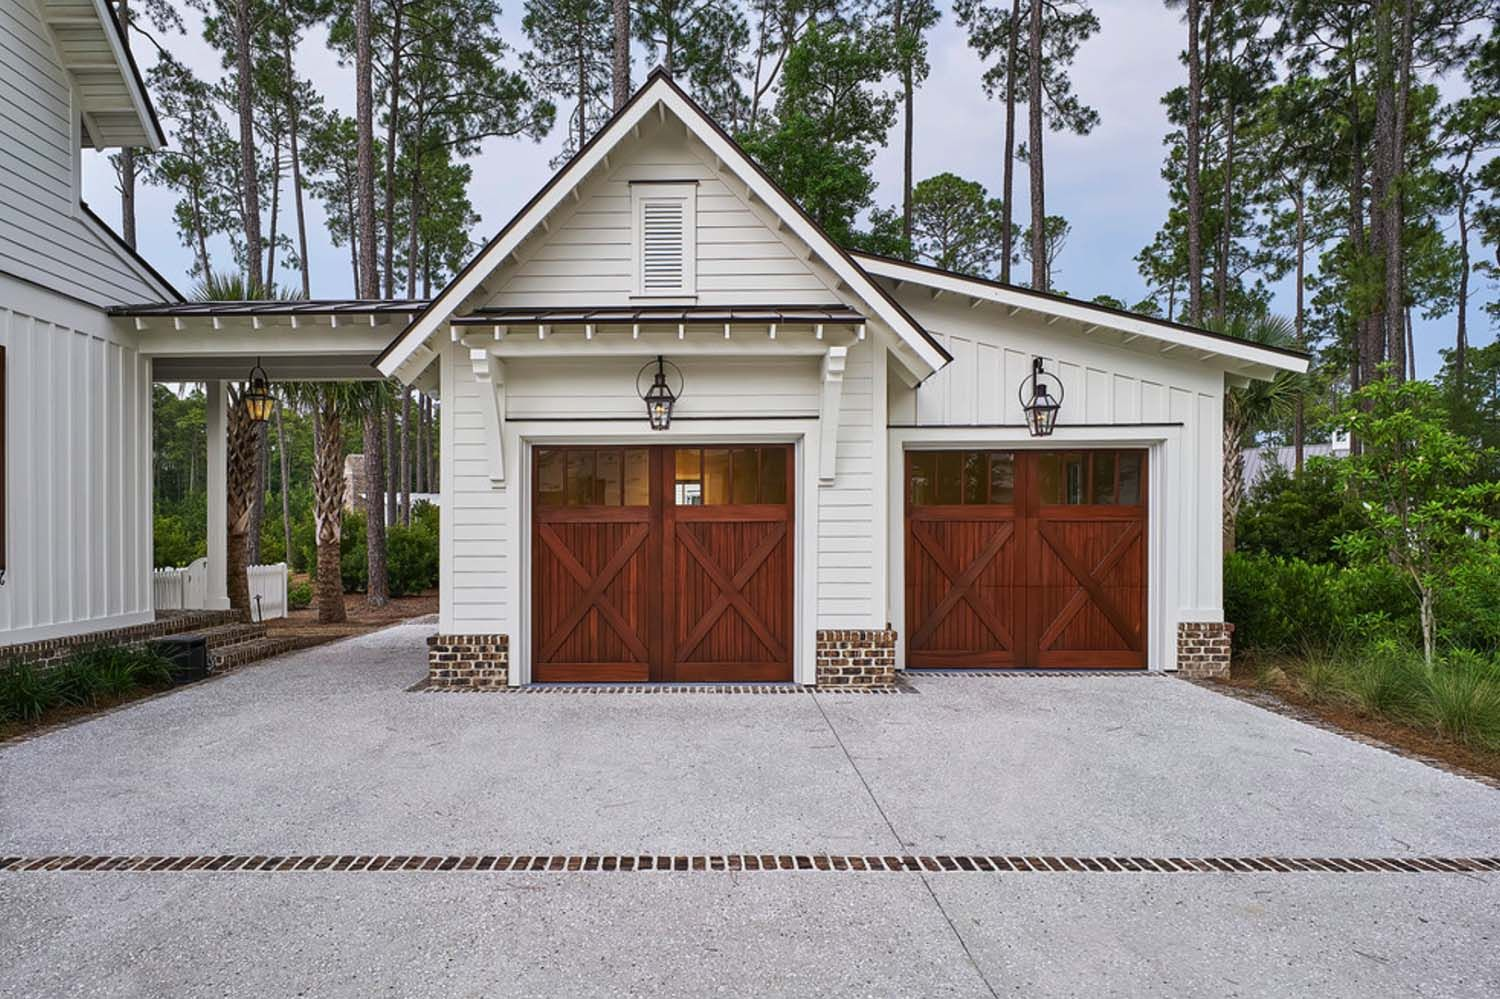 Closing in a carport to make guest suite - The First Level Is A Garage You Walk Up To The Second Floor To Reach The Kitchen And Living Area Interesting Pinteres